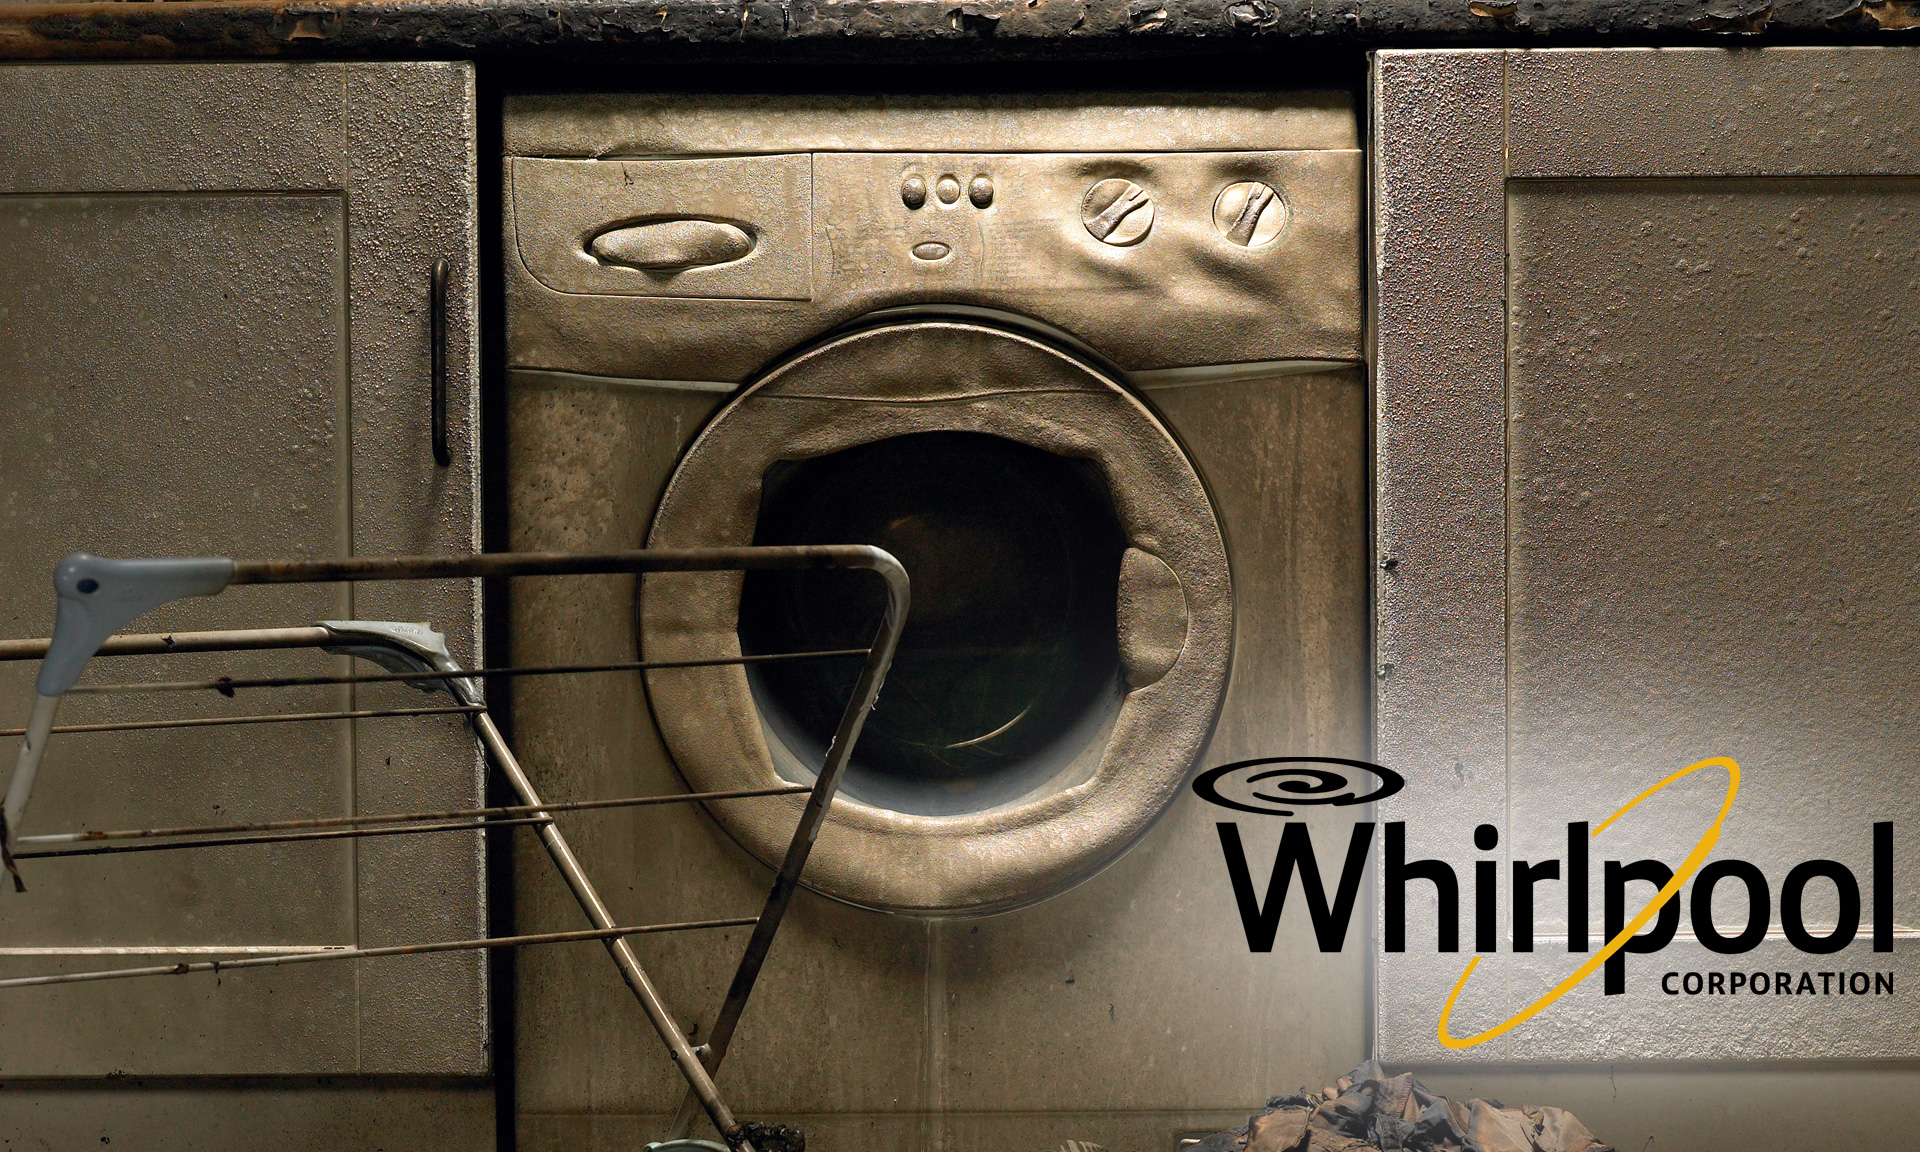 A defunct washing machine